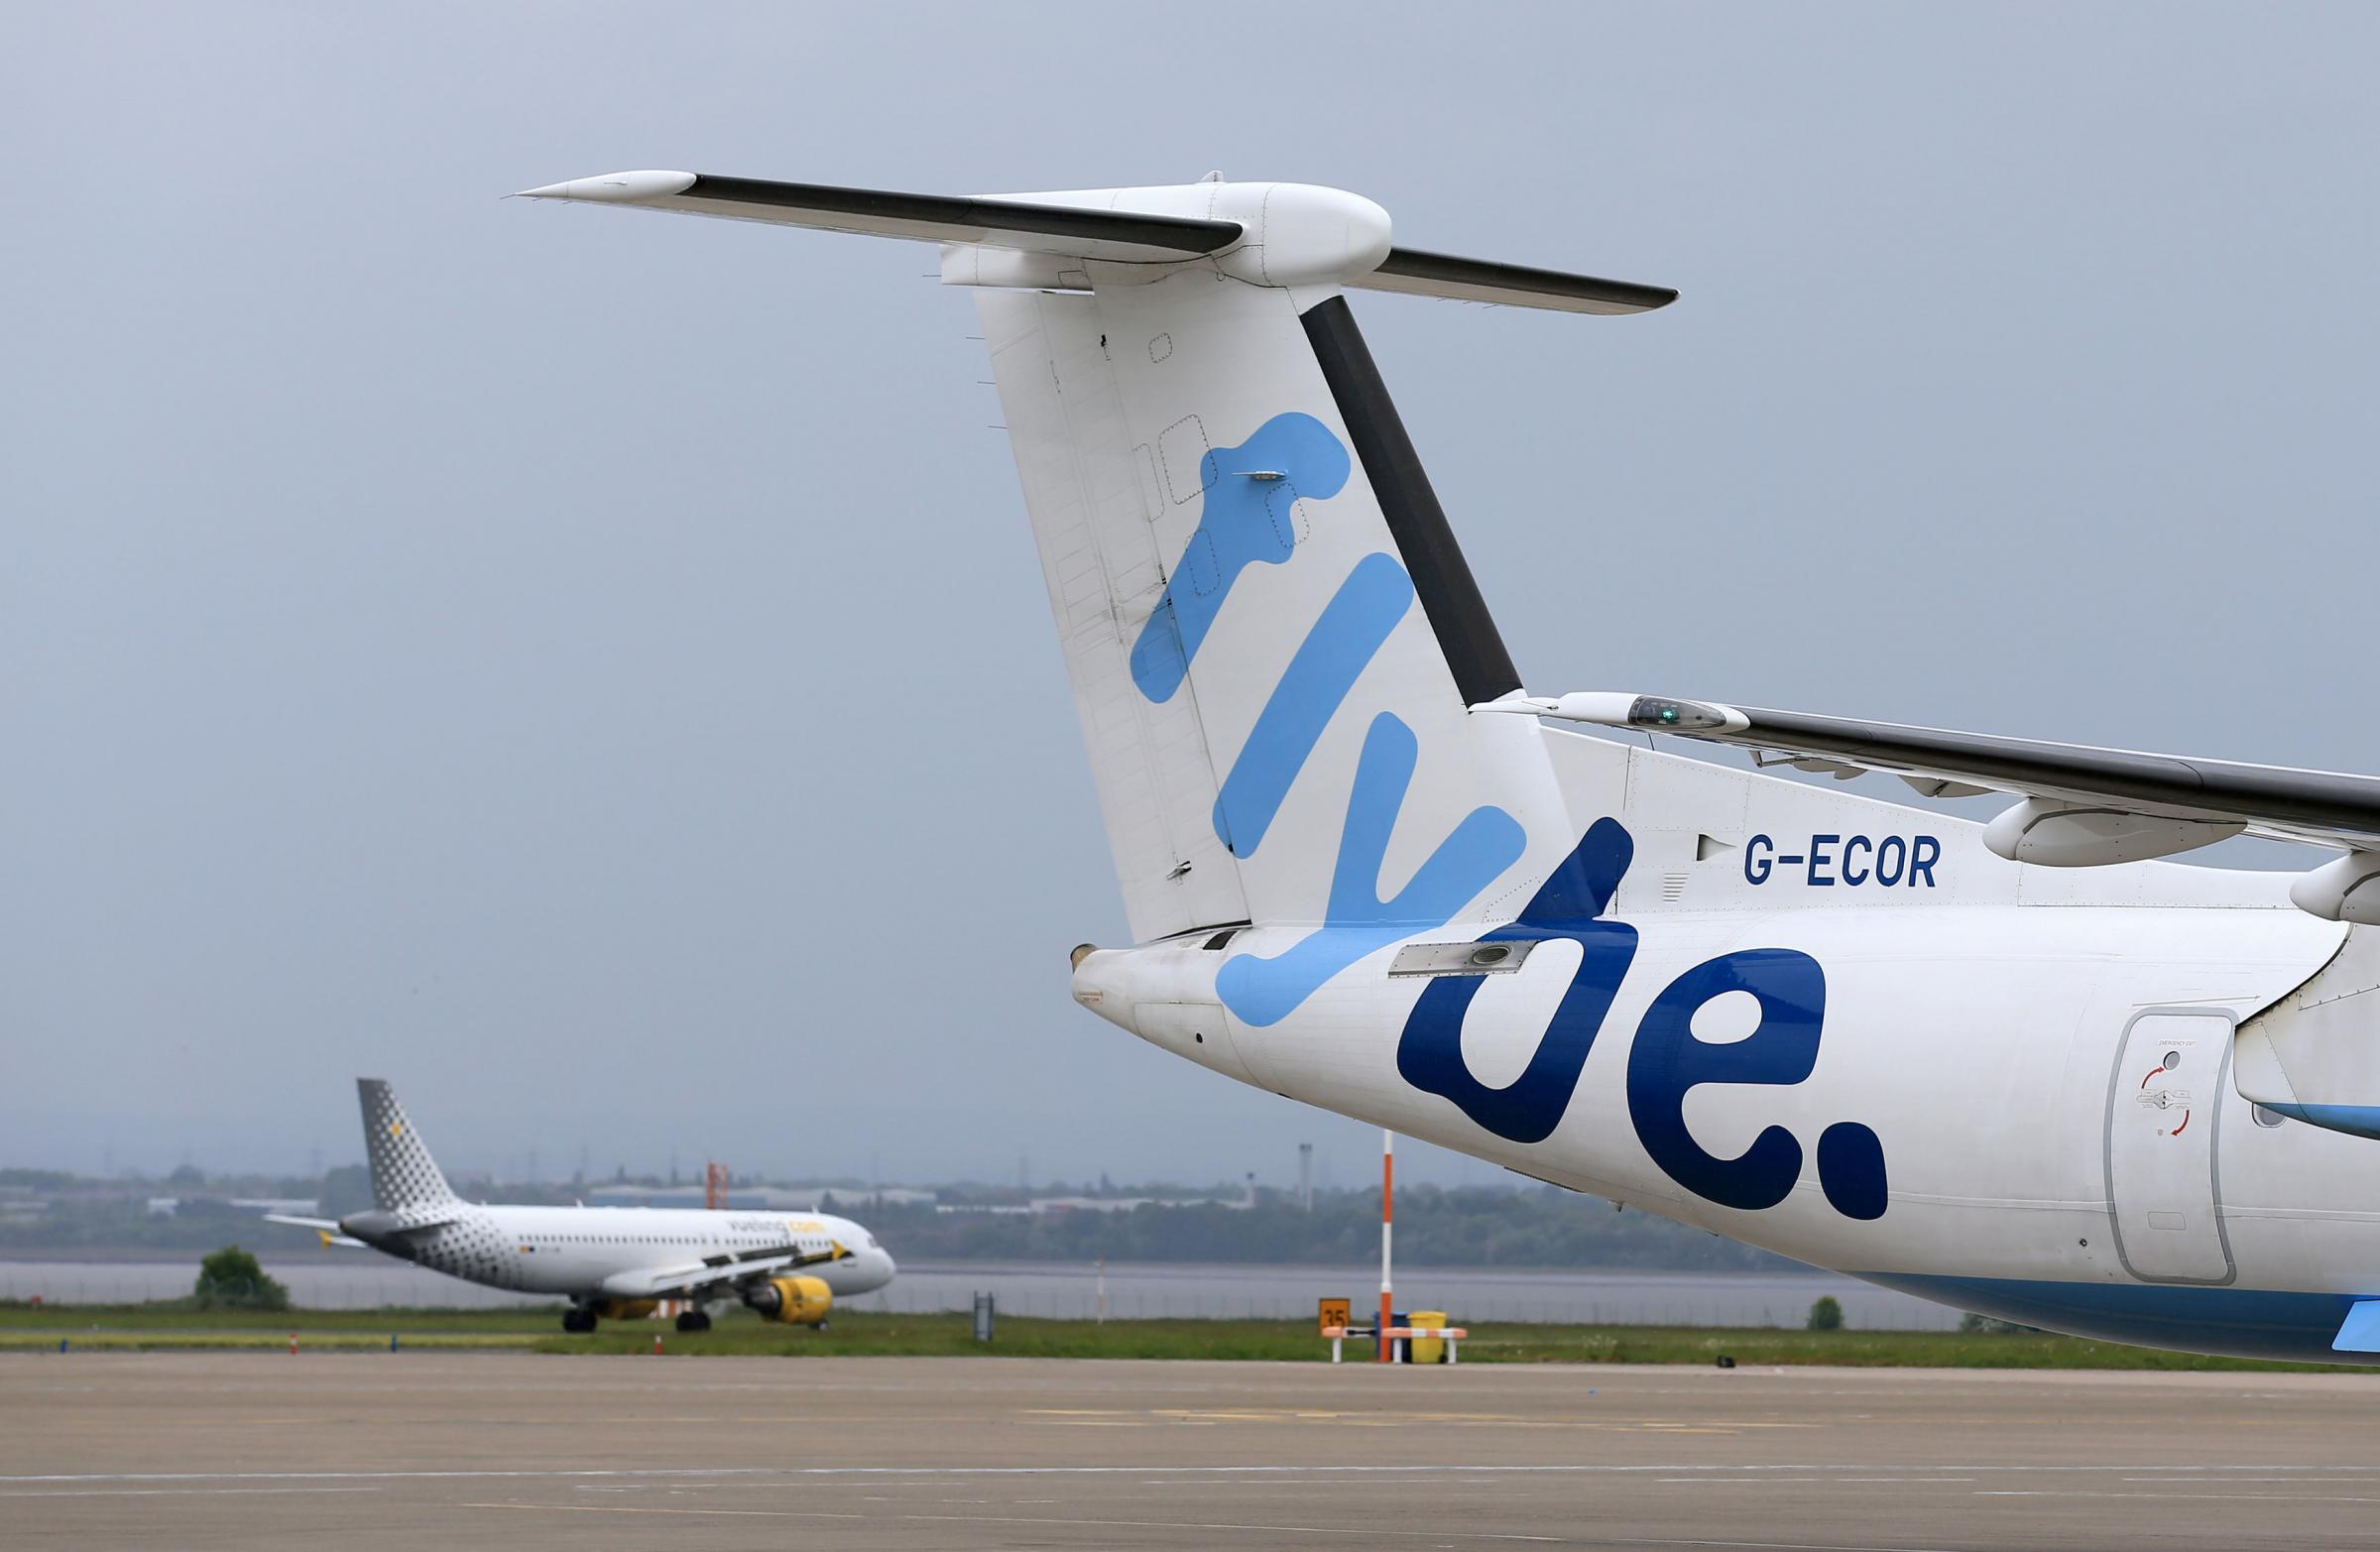 Flybe the regional airline said a